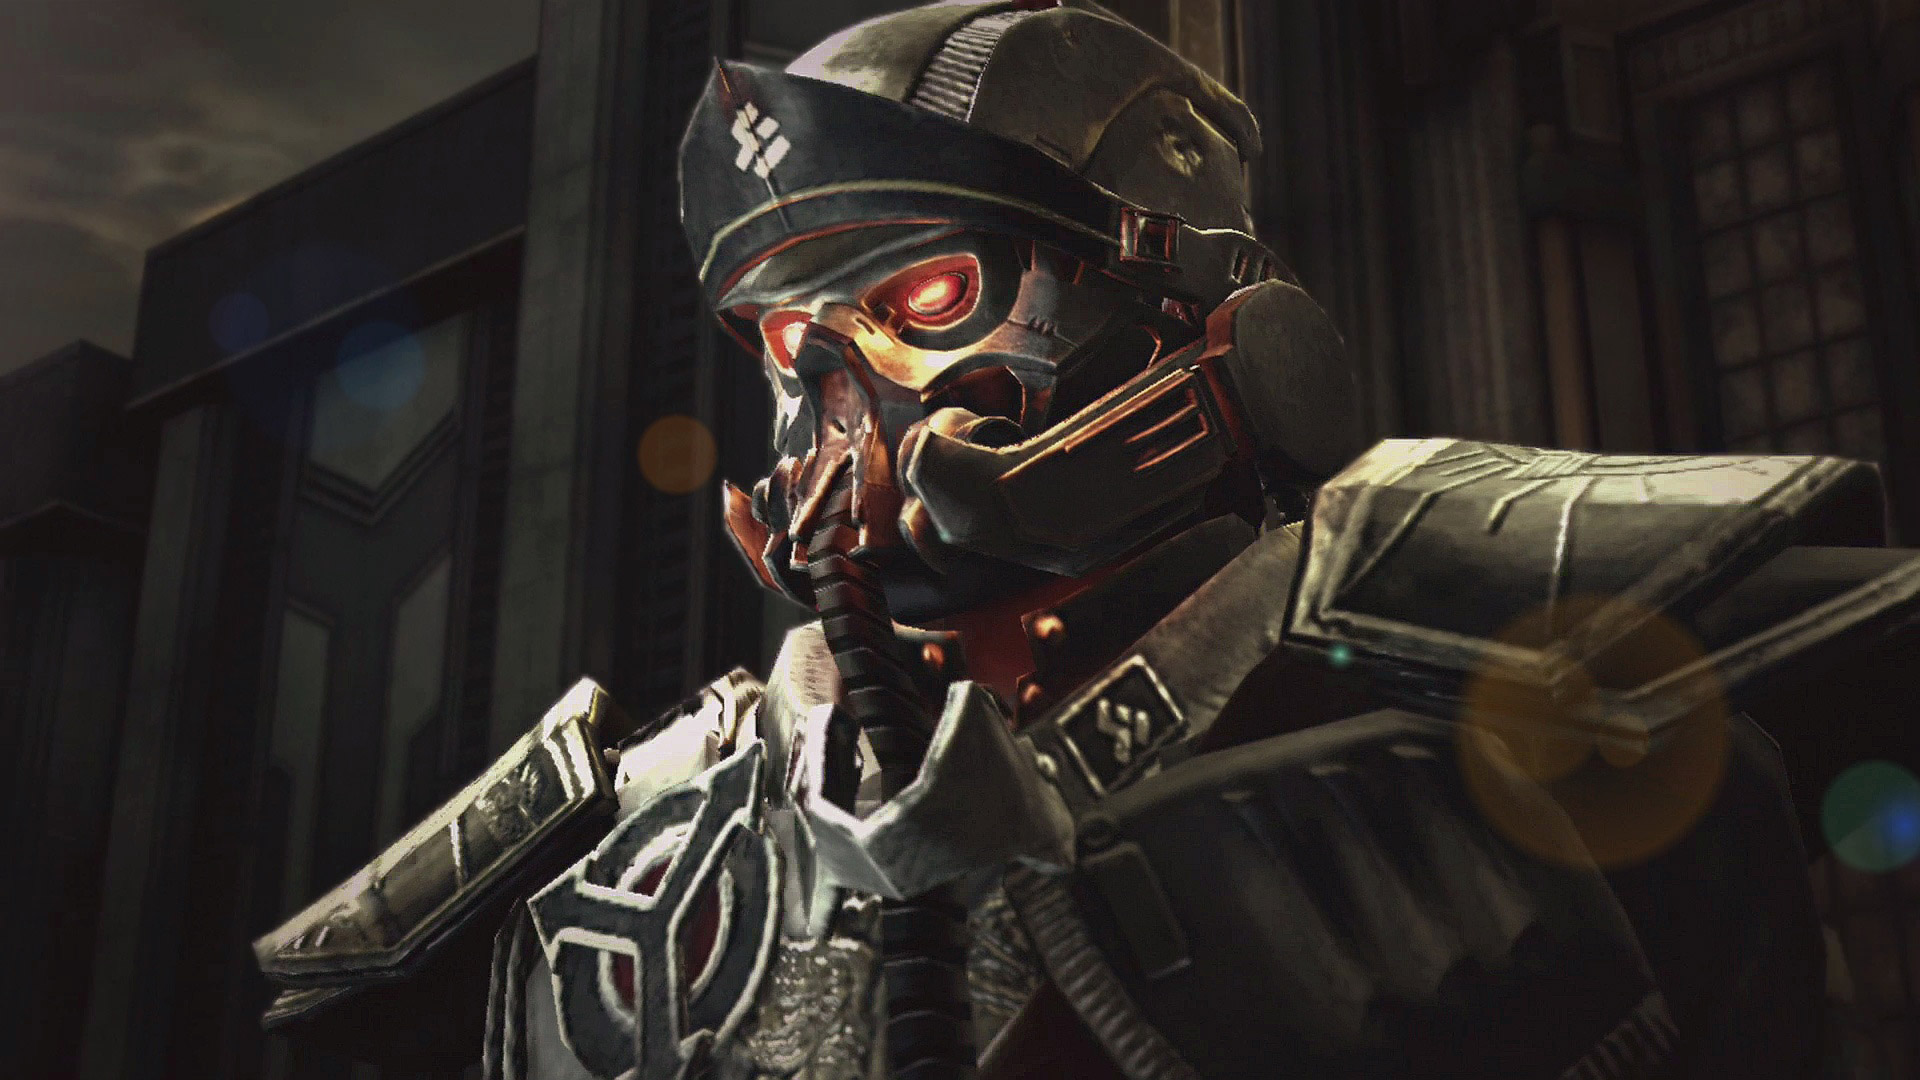 Free Killzone 2 Wallpaper in 1920x1080